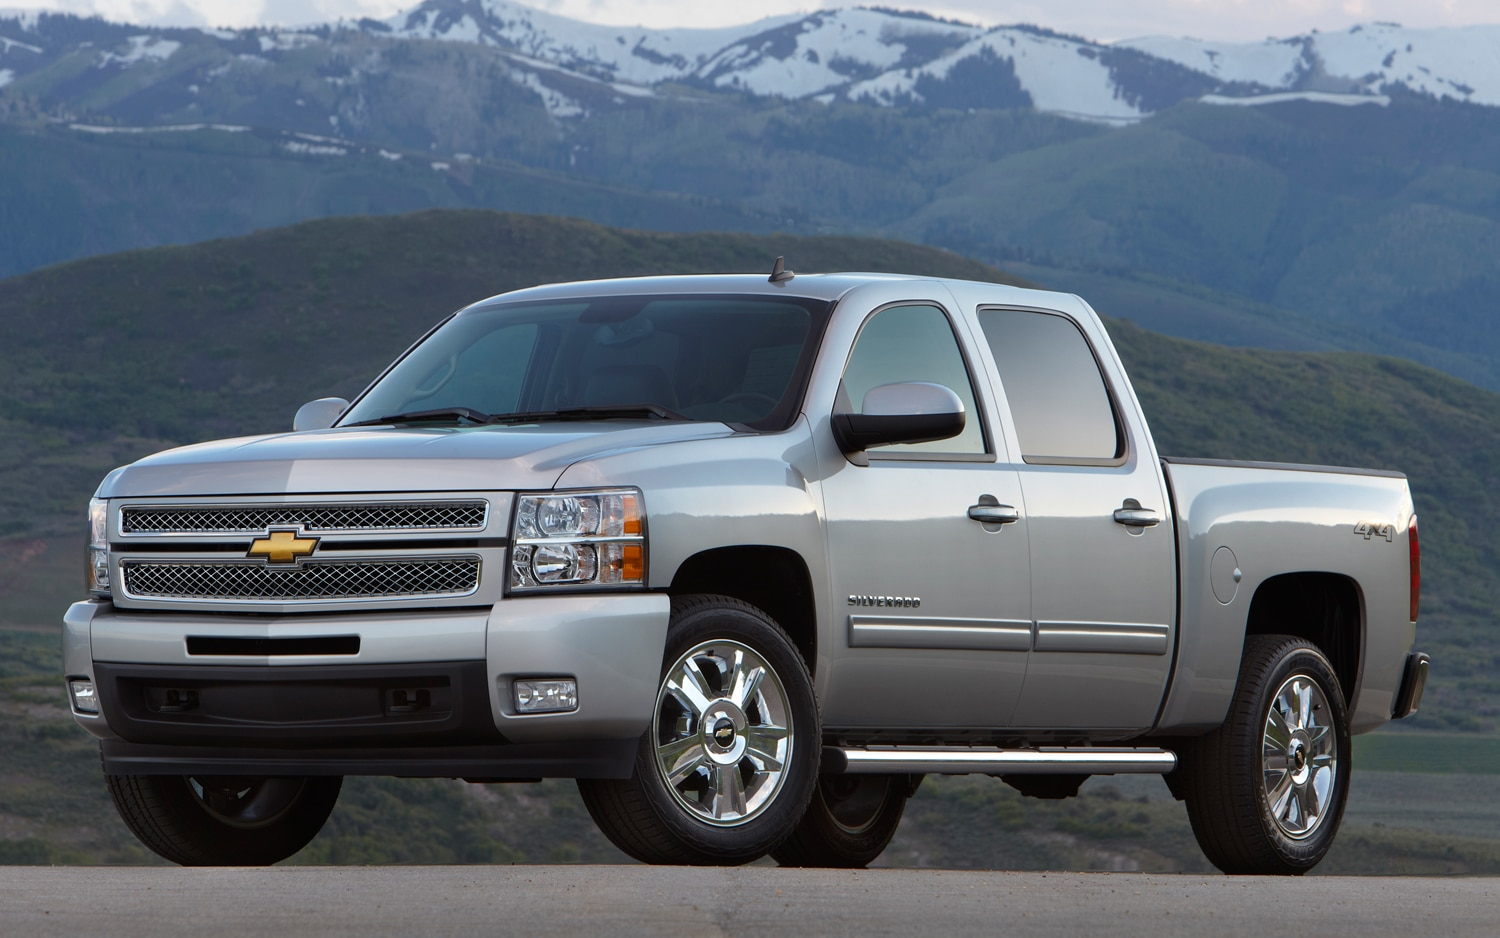 2012 Chevrolet Silverado Gets with New Appearance Packages, Wi-Fi